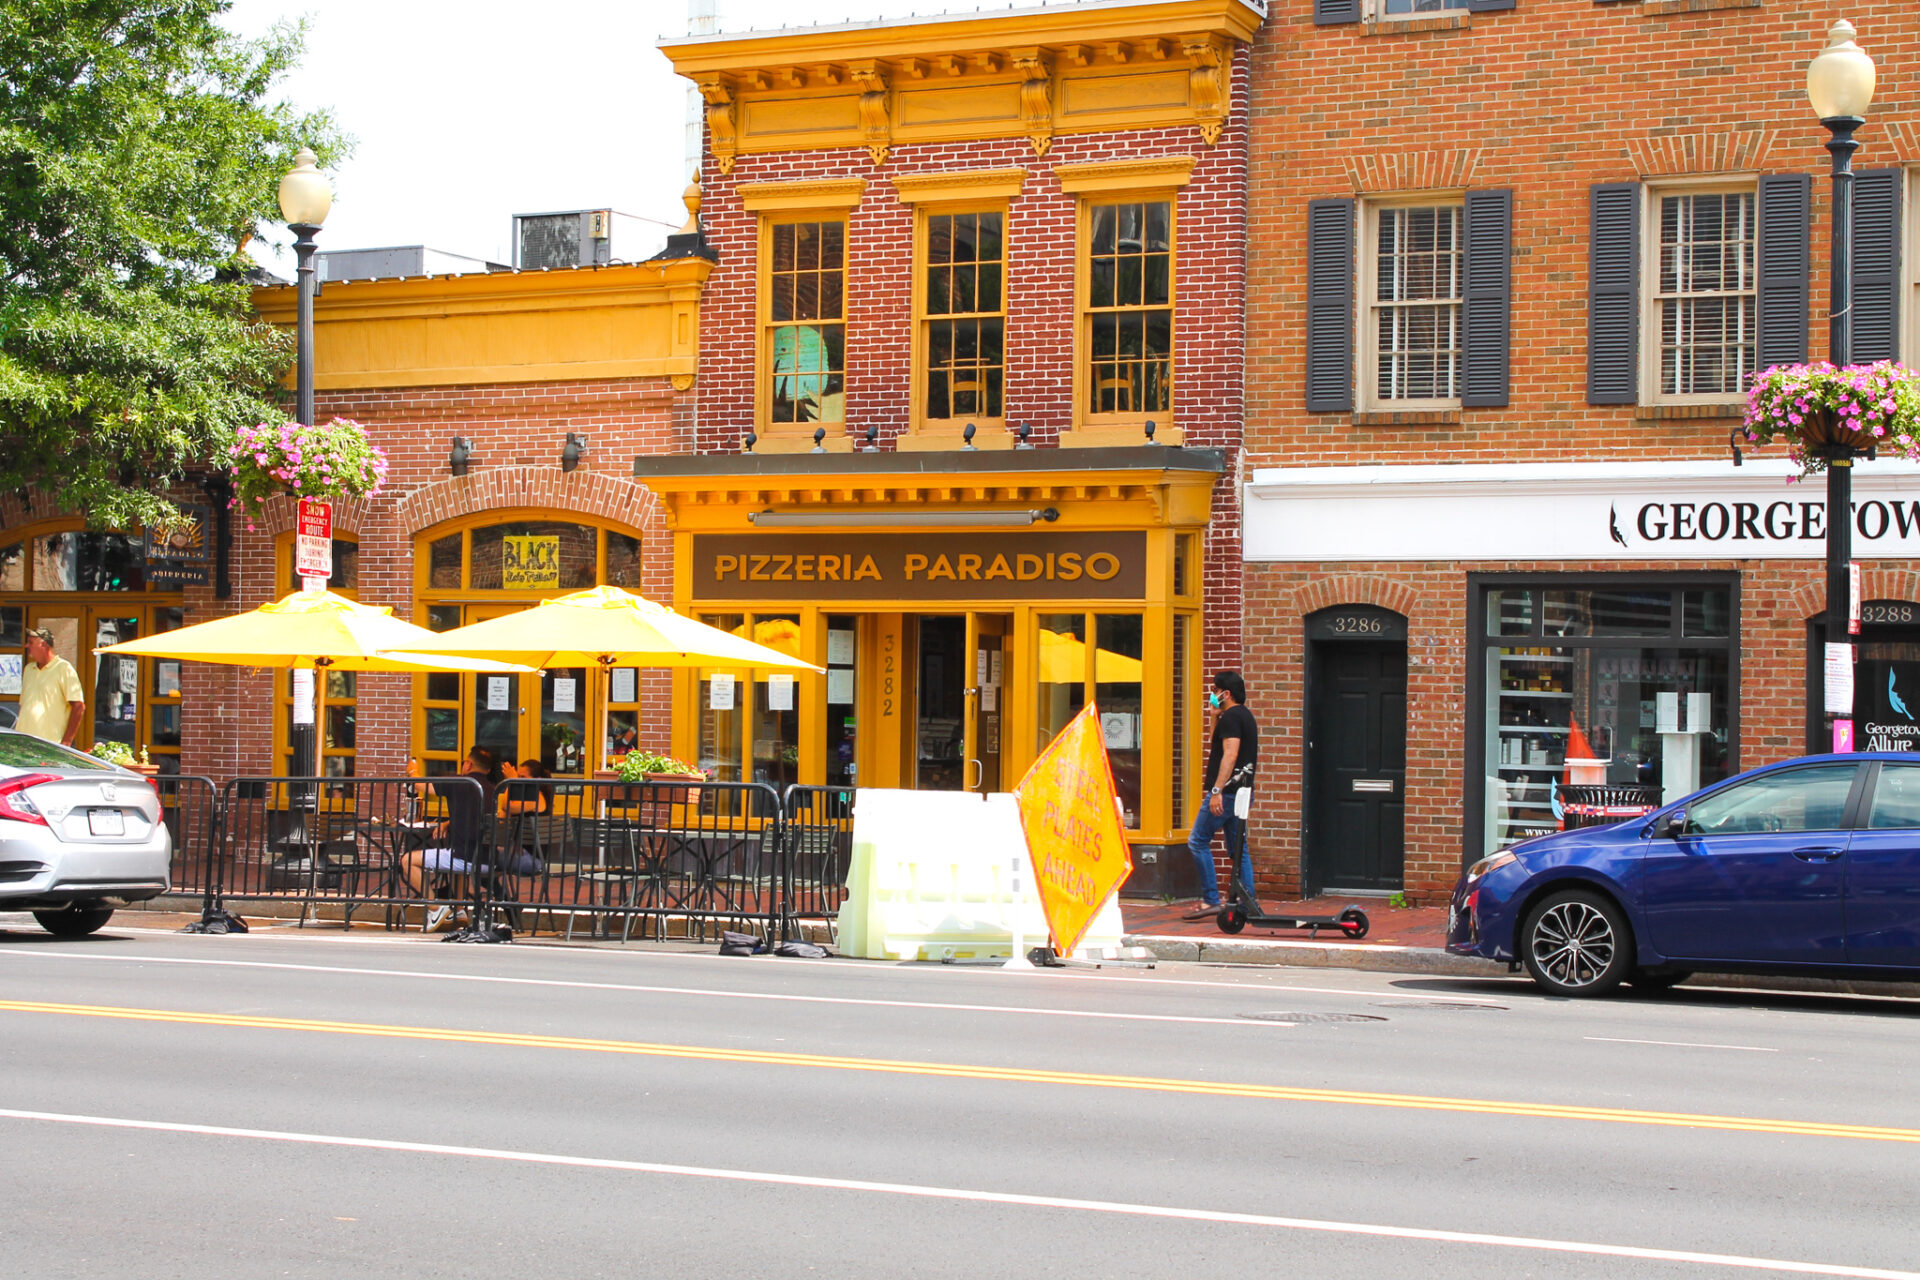 The exterior shot of Pizzeria Paradiso, located in Georgetown, DC. This Bahamian Gyal blogger, Rogan Smith bought a pizza from the pizza shop during her trip to Georgetown.